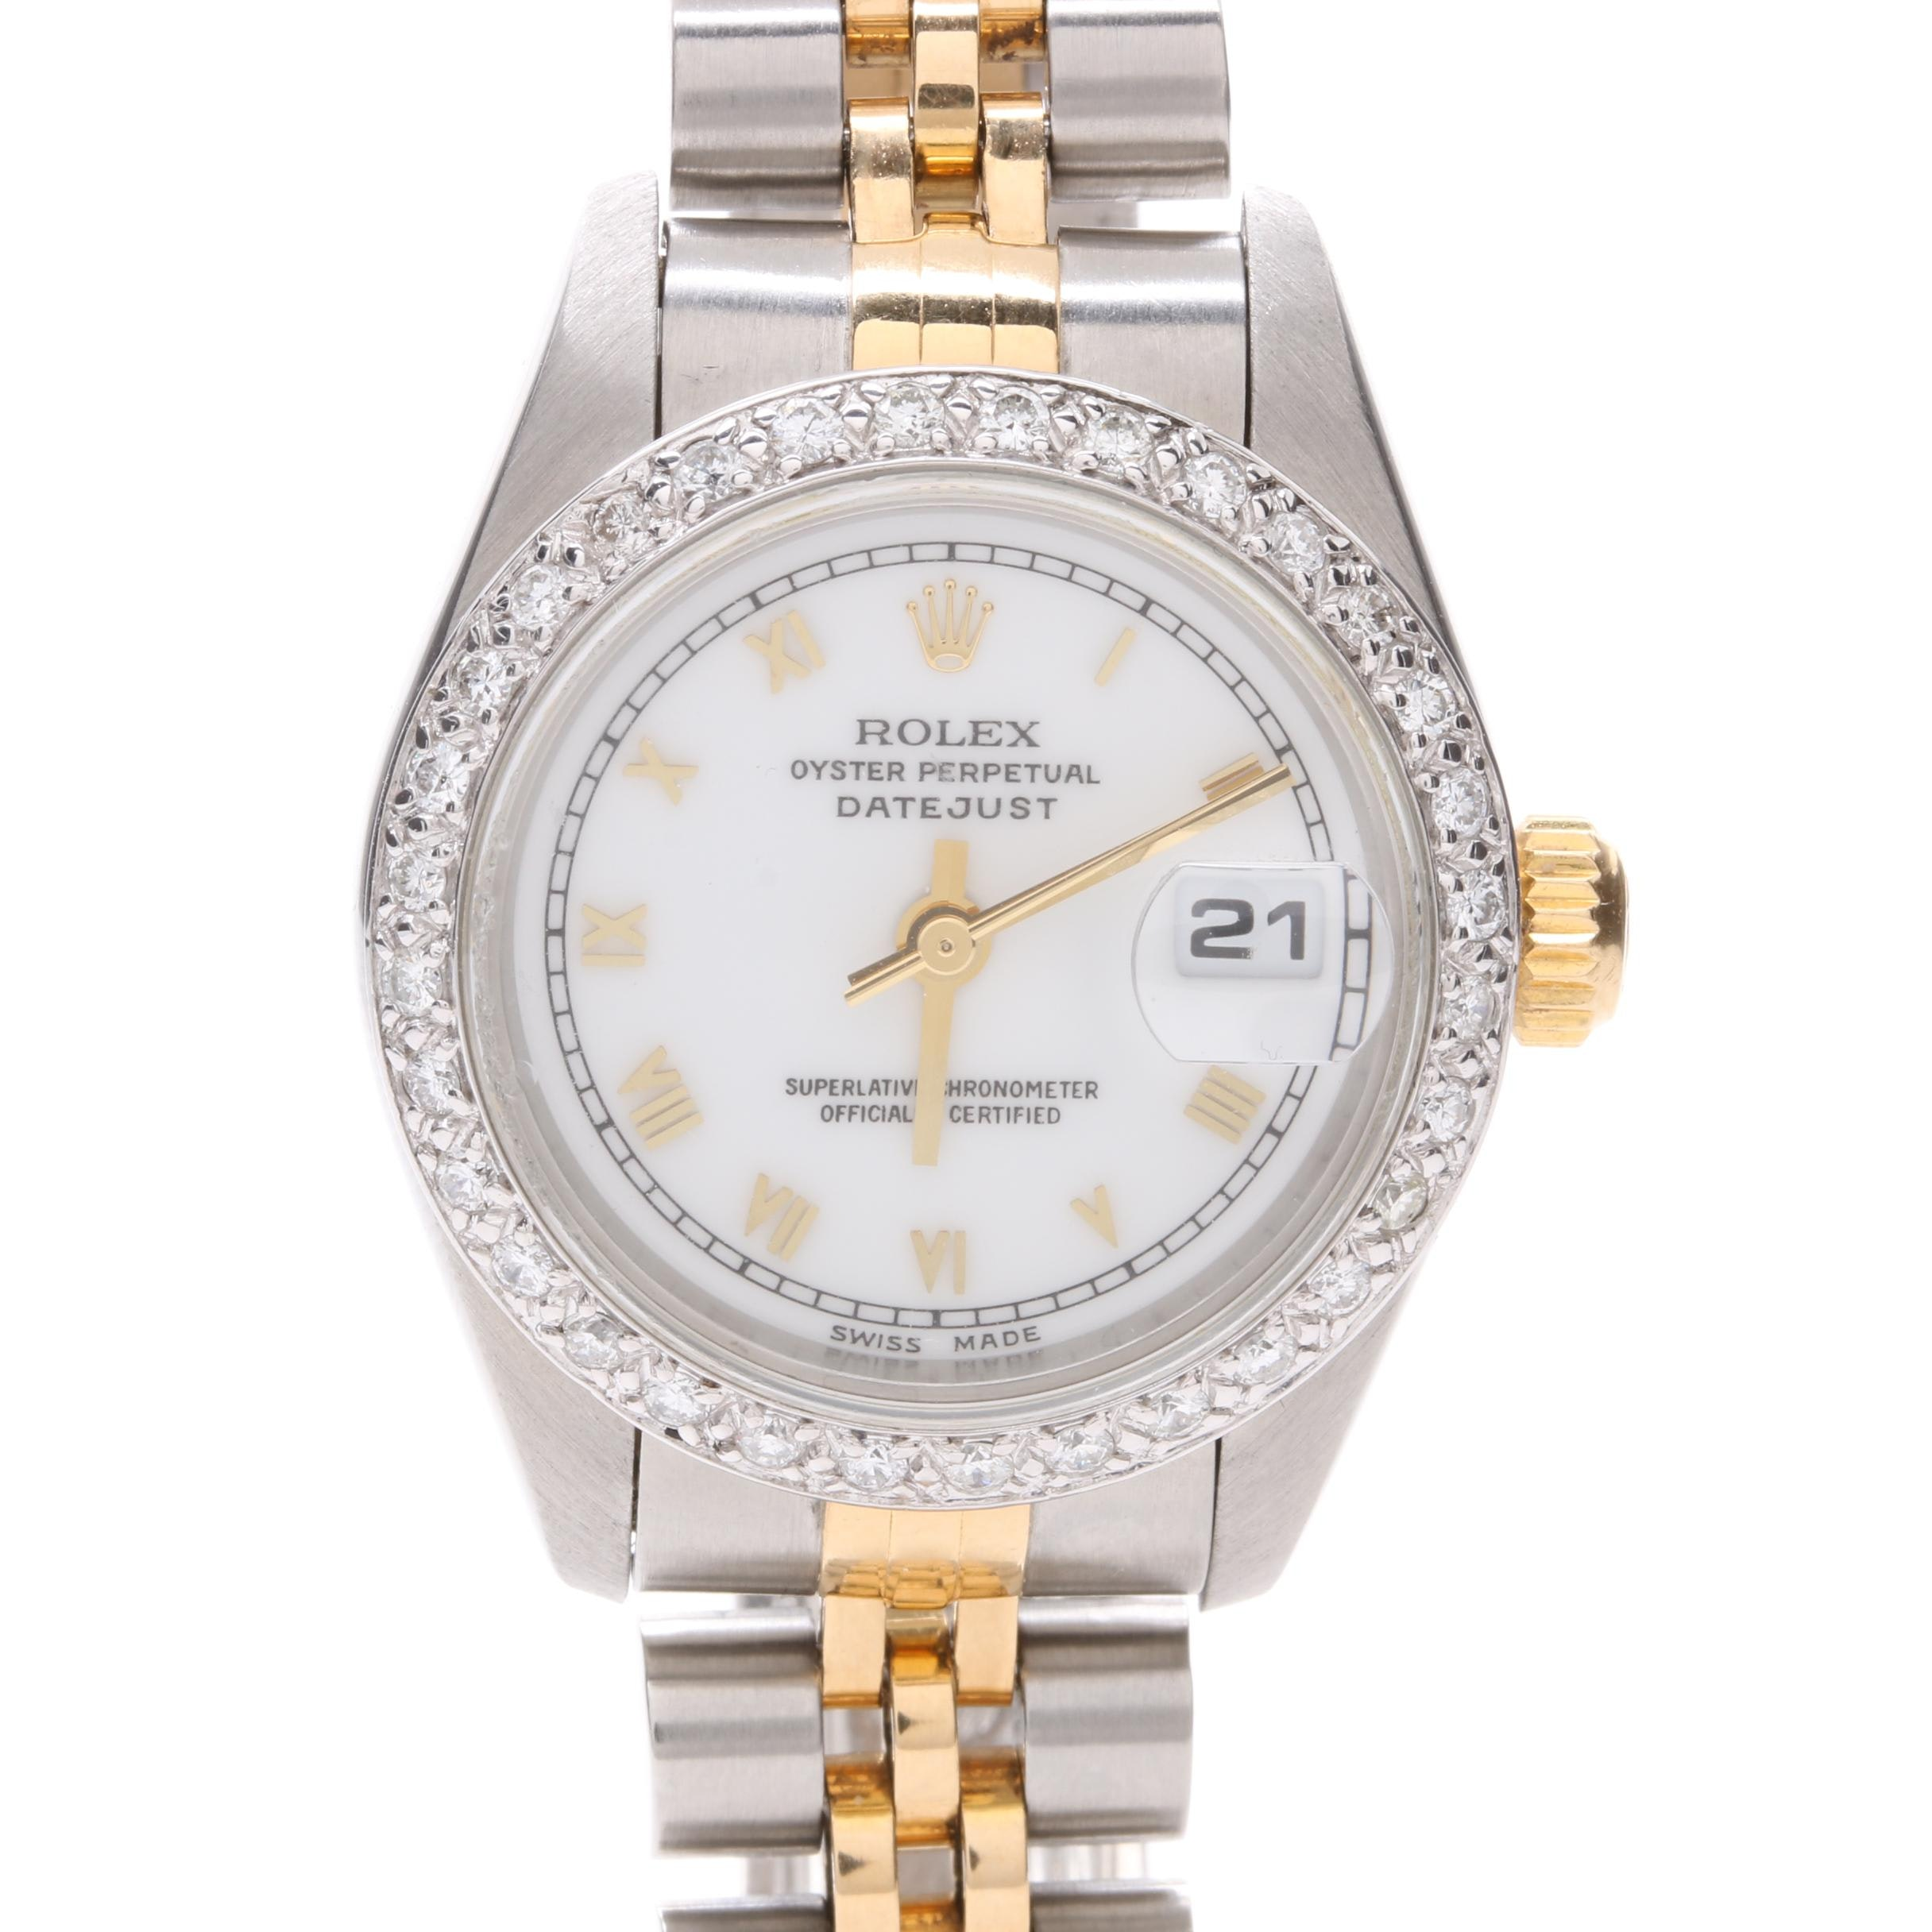 Rolex Stainless Steel and 18K Yellow Gold Diamond Wristwatch